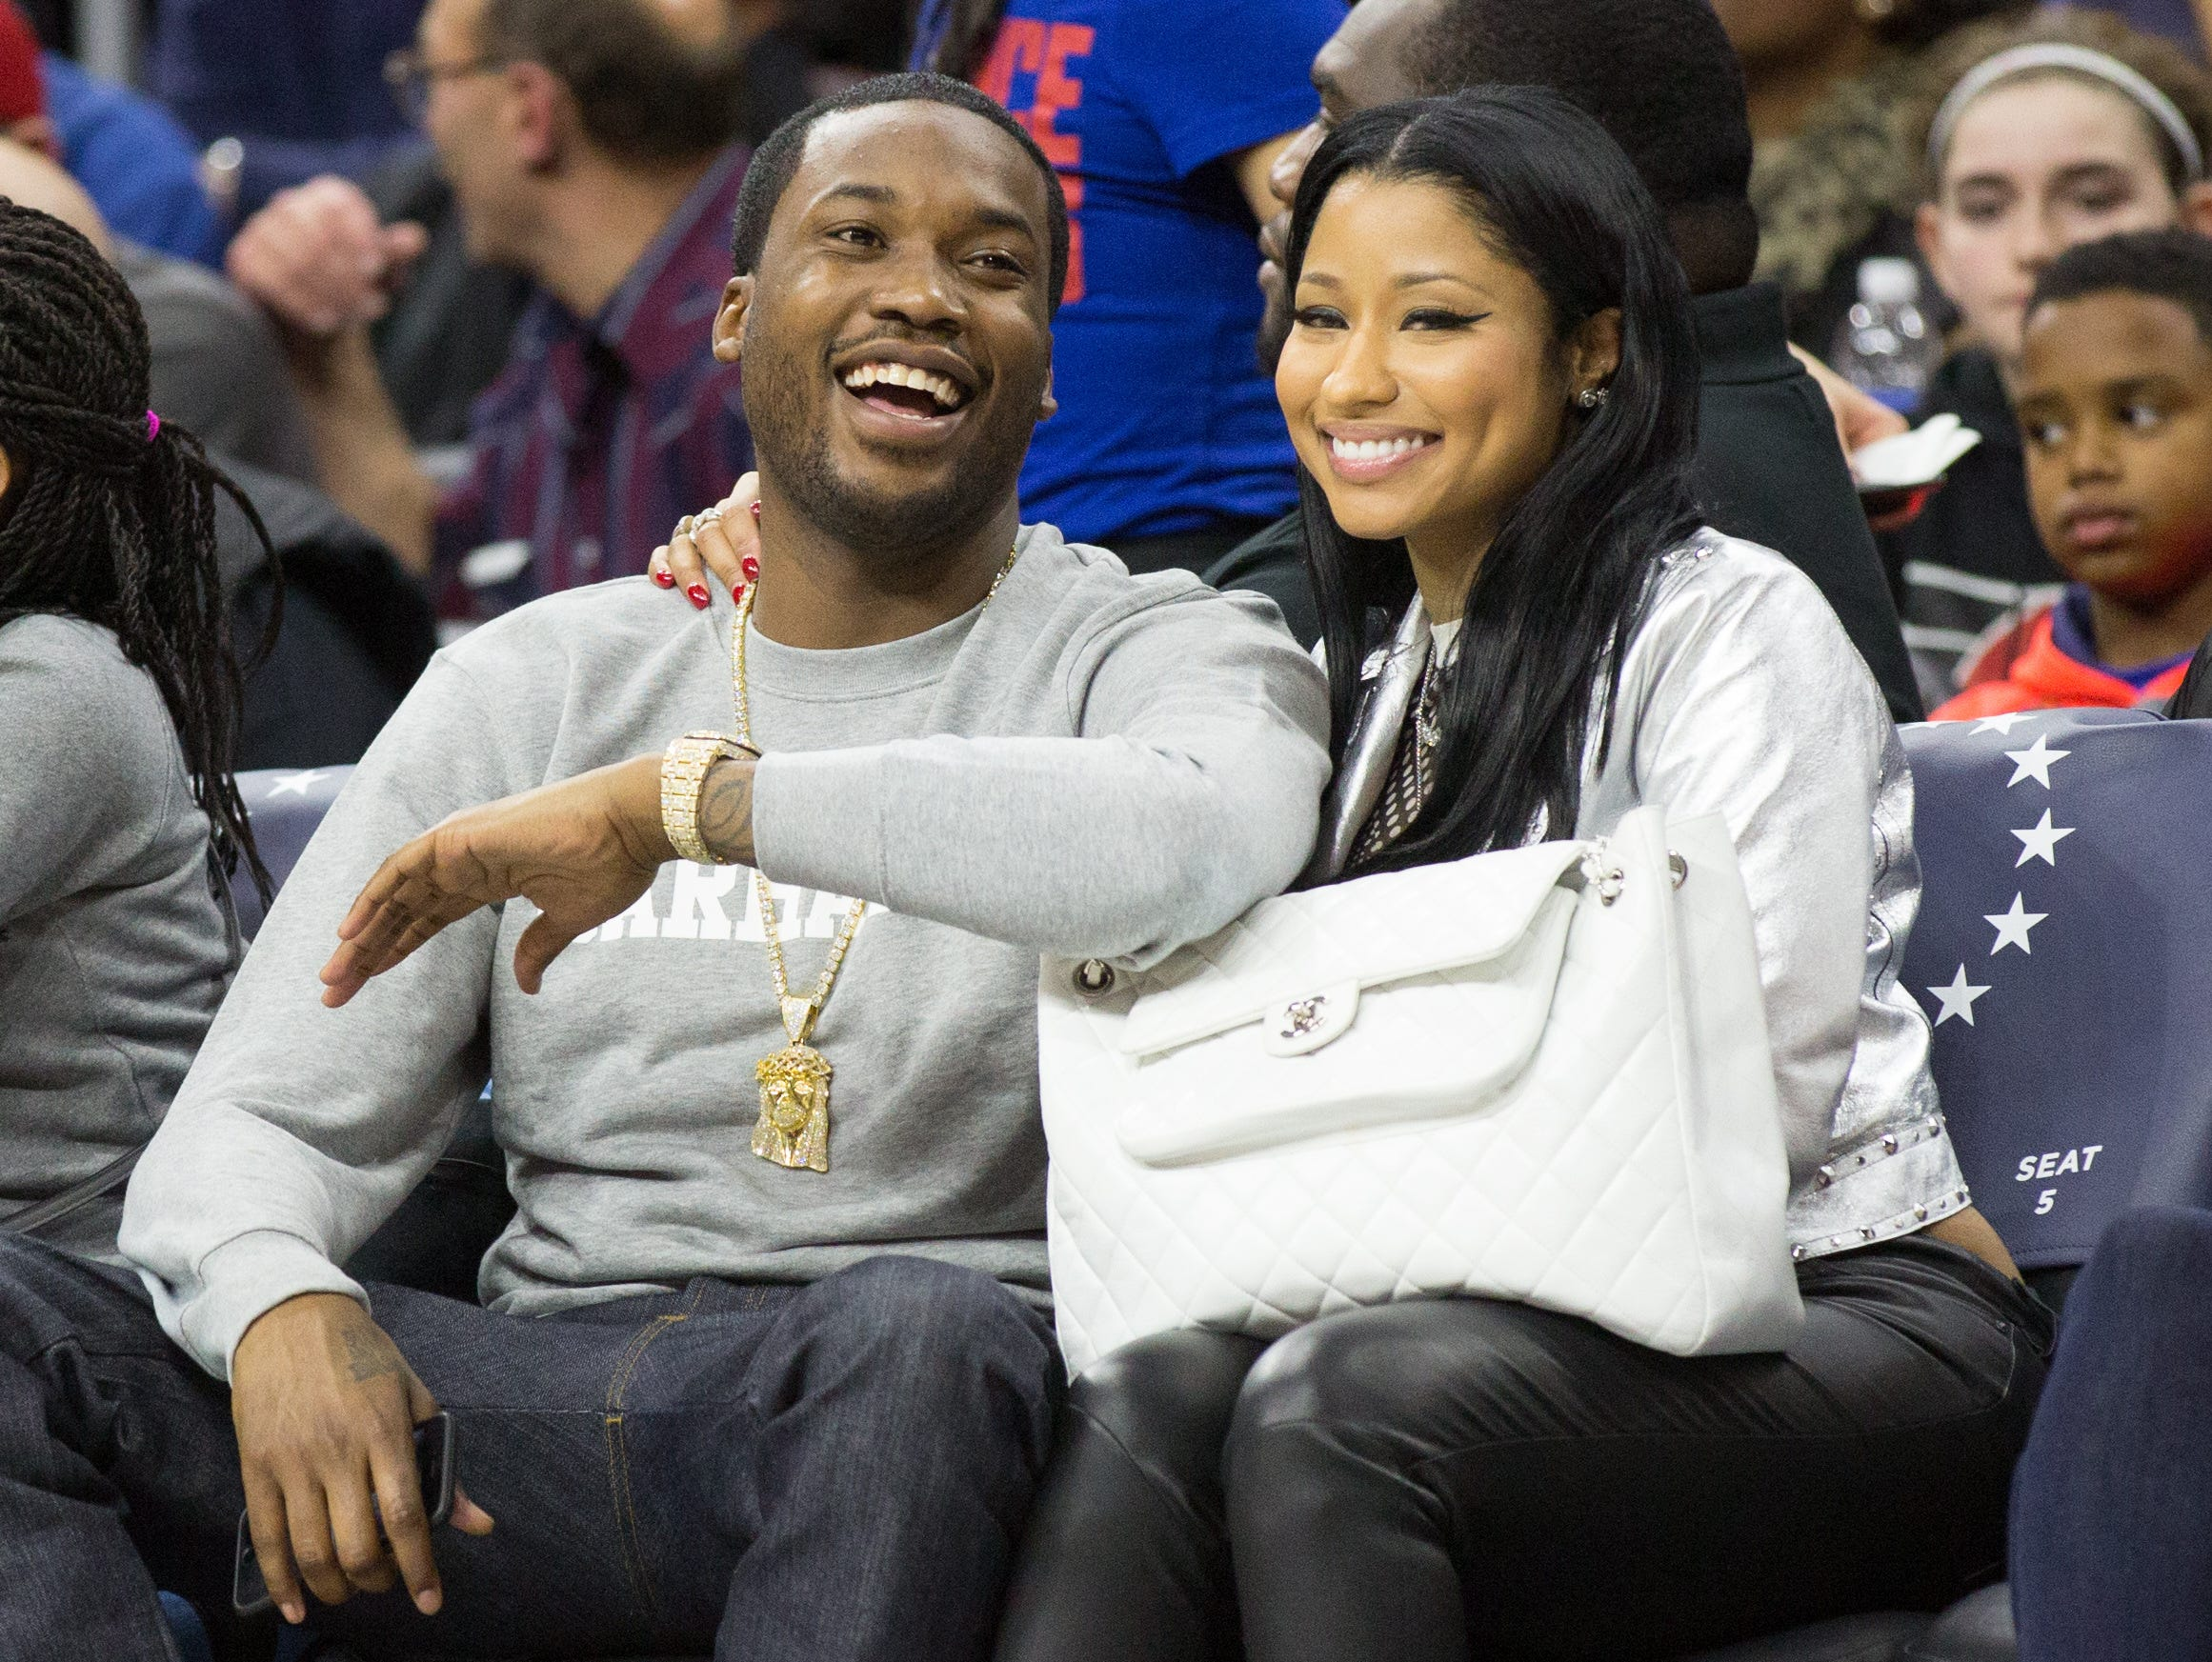 Jan 16, 2016; Philadelphia, PA, USA; Nicki Minaj (R) and Meek Mill (L) watch the game between the Philadelphia 76ers and the Portland Trail Blazers in second half at Wells Fargo Center. The Philadelphia 76ers won 114-89. Mandatory Credit: Bill Streicher-USA TODAY Sports ORG XMIT: USATSI-232506 ORIG FILE ID:  20160116_krj_sq4_130.JPG